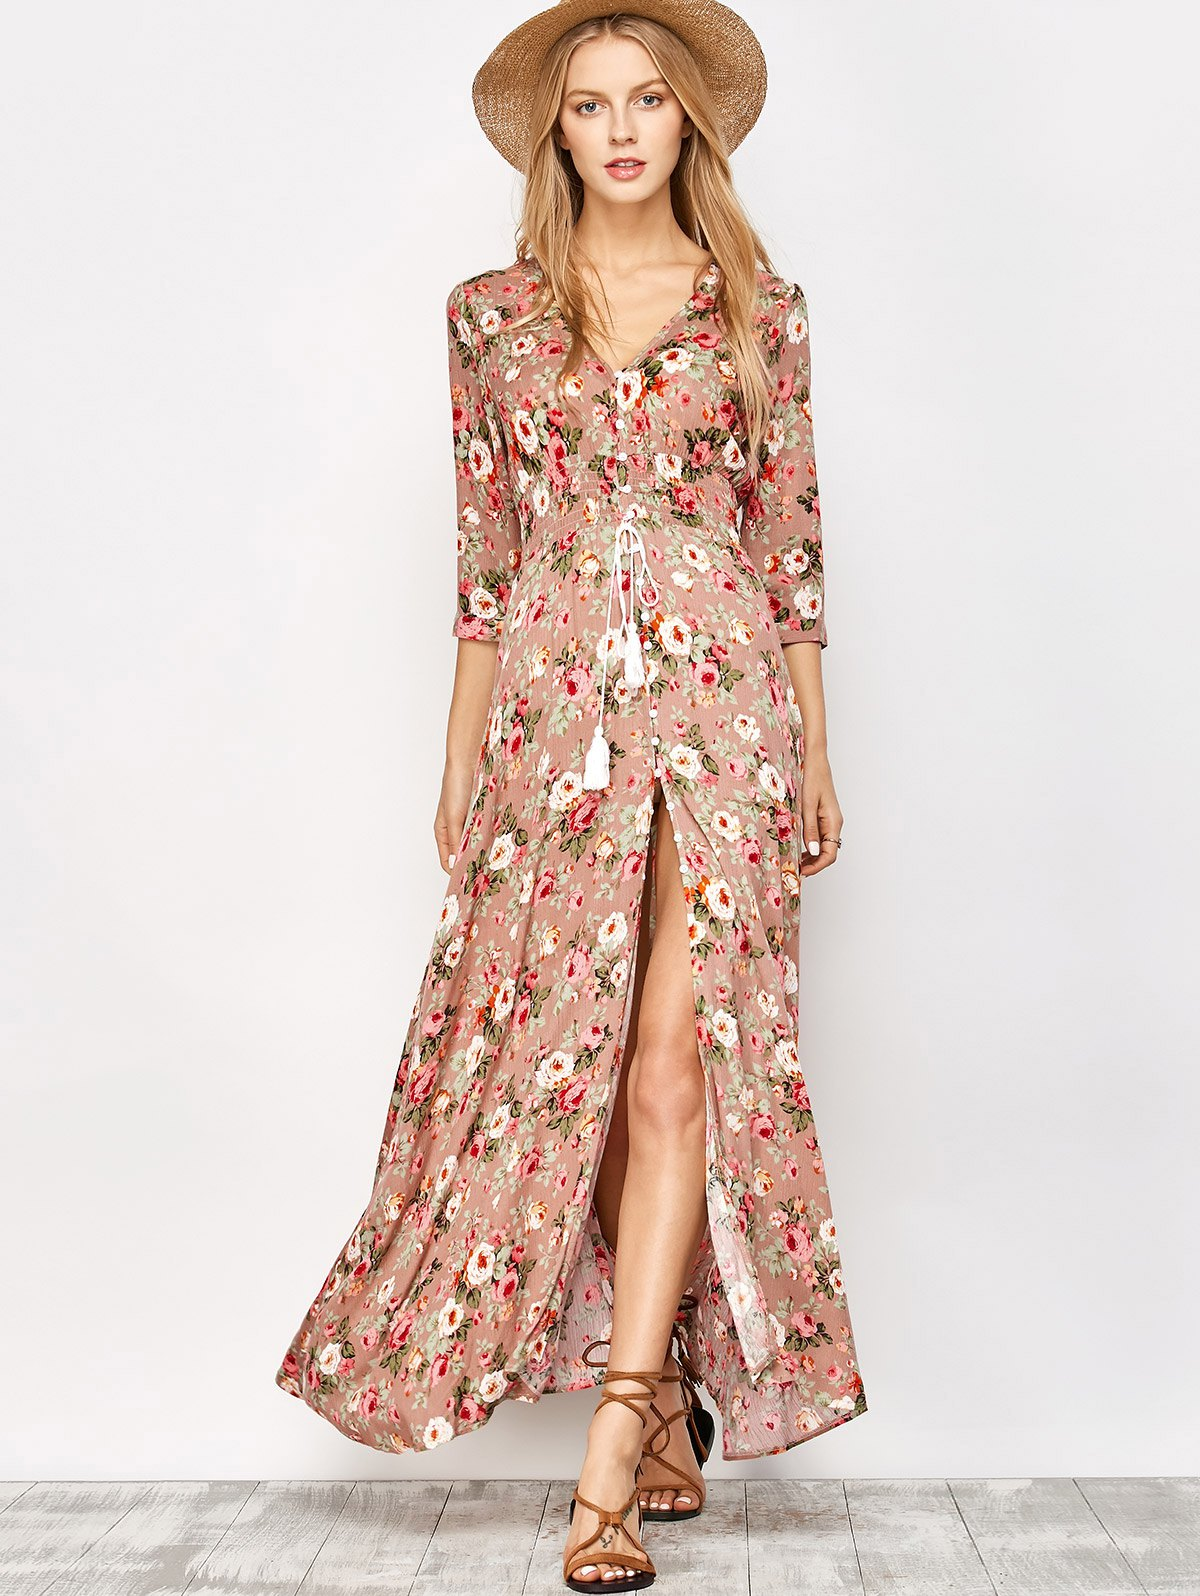 Must-Have: The Dreamiest Maxi Dress